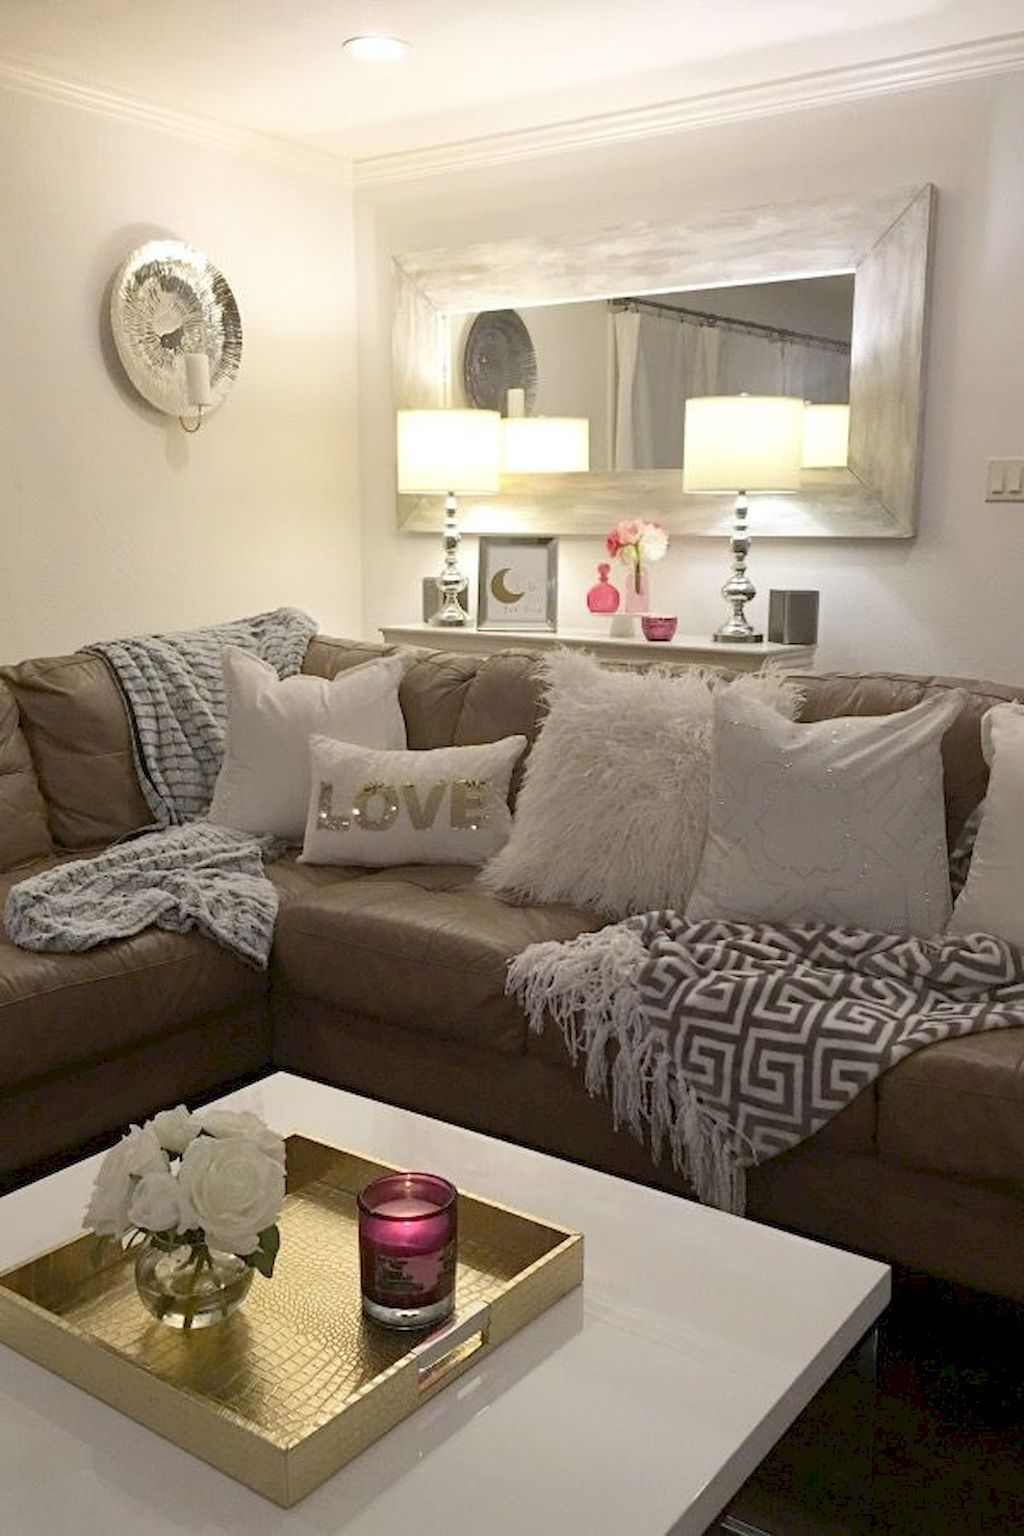 Clever college apartment decorating ideas on a budget (43 ...